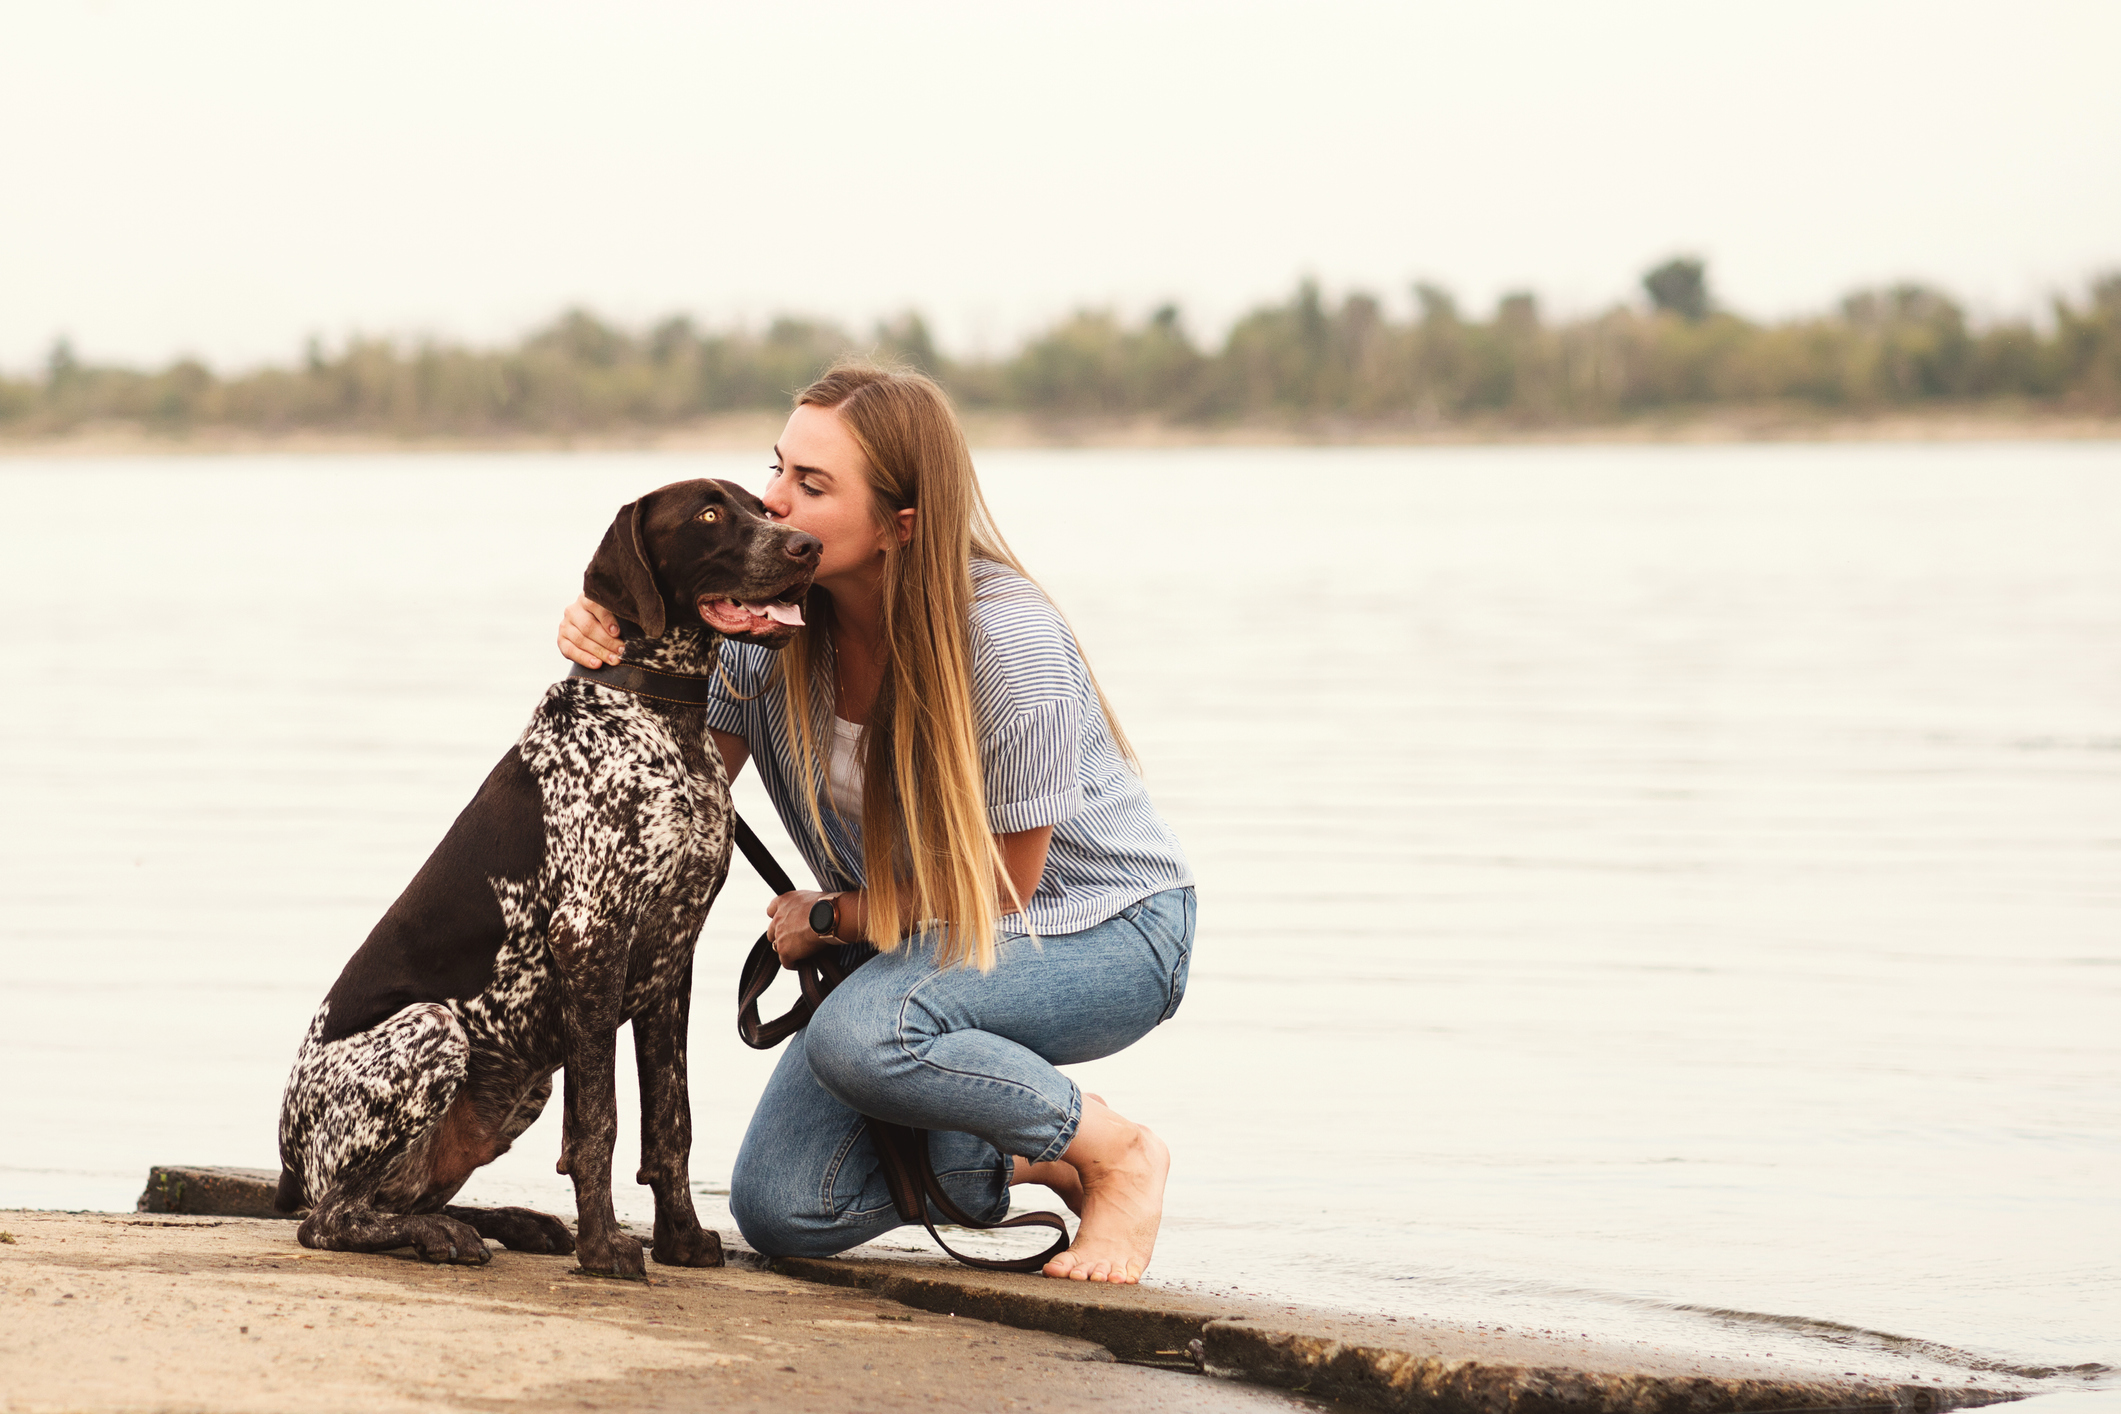 Best friends young woman and German Shorthaired Pointer sitting on by the river. Girl stroking and kissing her dog. Concepts of friendship, pets, togetherness